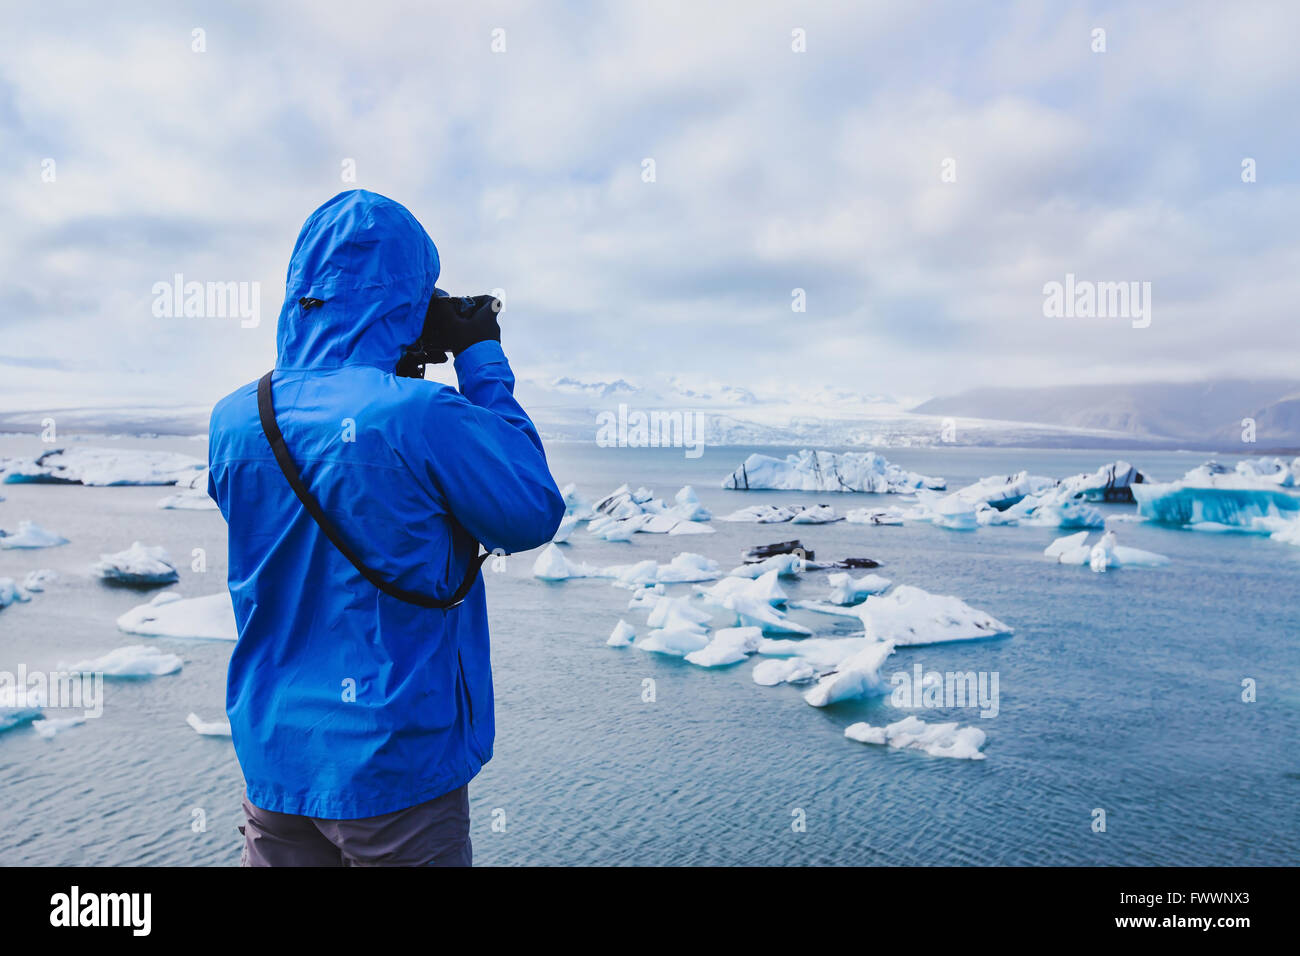 nature travel photographer, person taking photo of arctic icebergs in Iceland - Stock Image